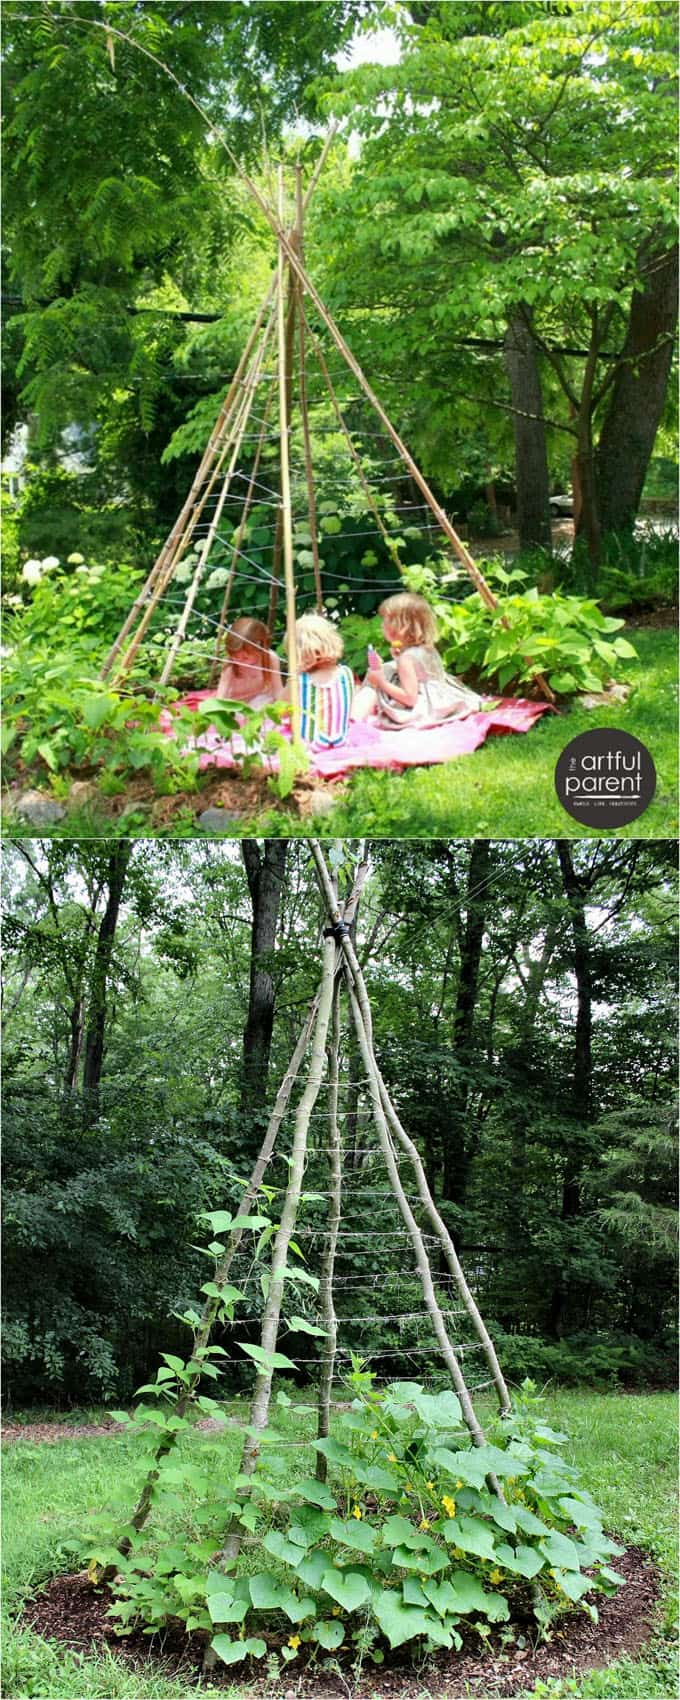 Trellis Ideas For Gardens 21 easy diy garden trellis ideas vertical growing structures a a magical bean teepee is a delightful retreat for all ages all you need are a few bamboo sticks or tree branches and some twine workwithnaturefo